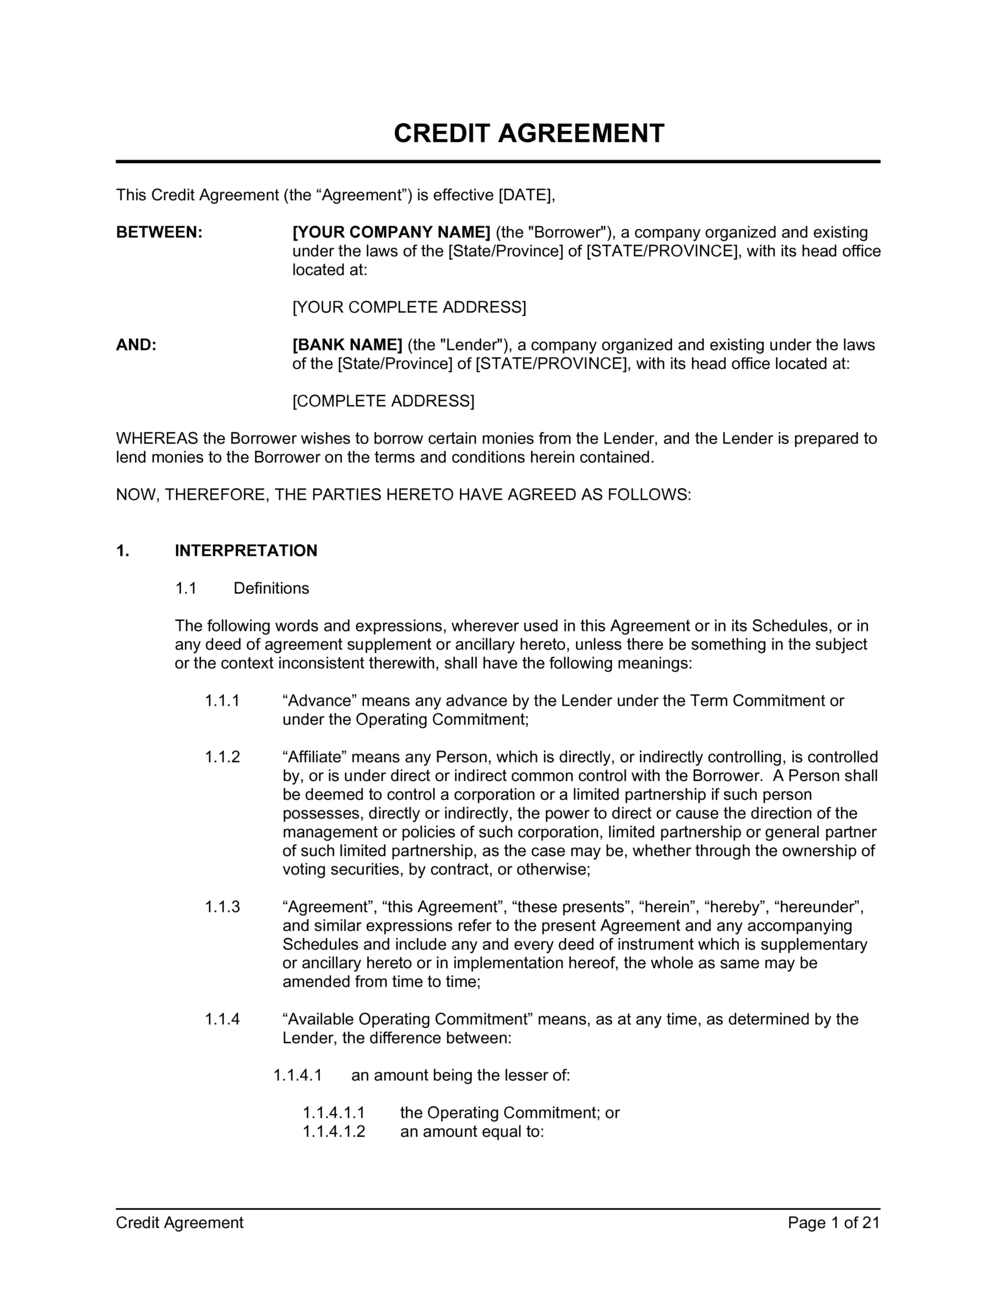 Business-in-a-Box's Credit Agreement Template